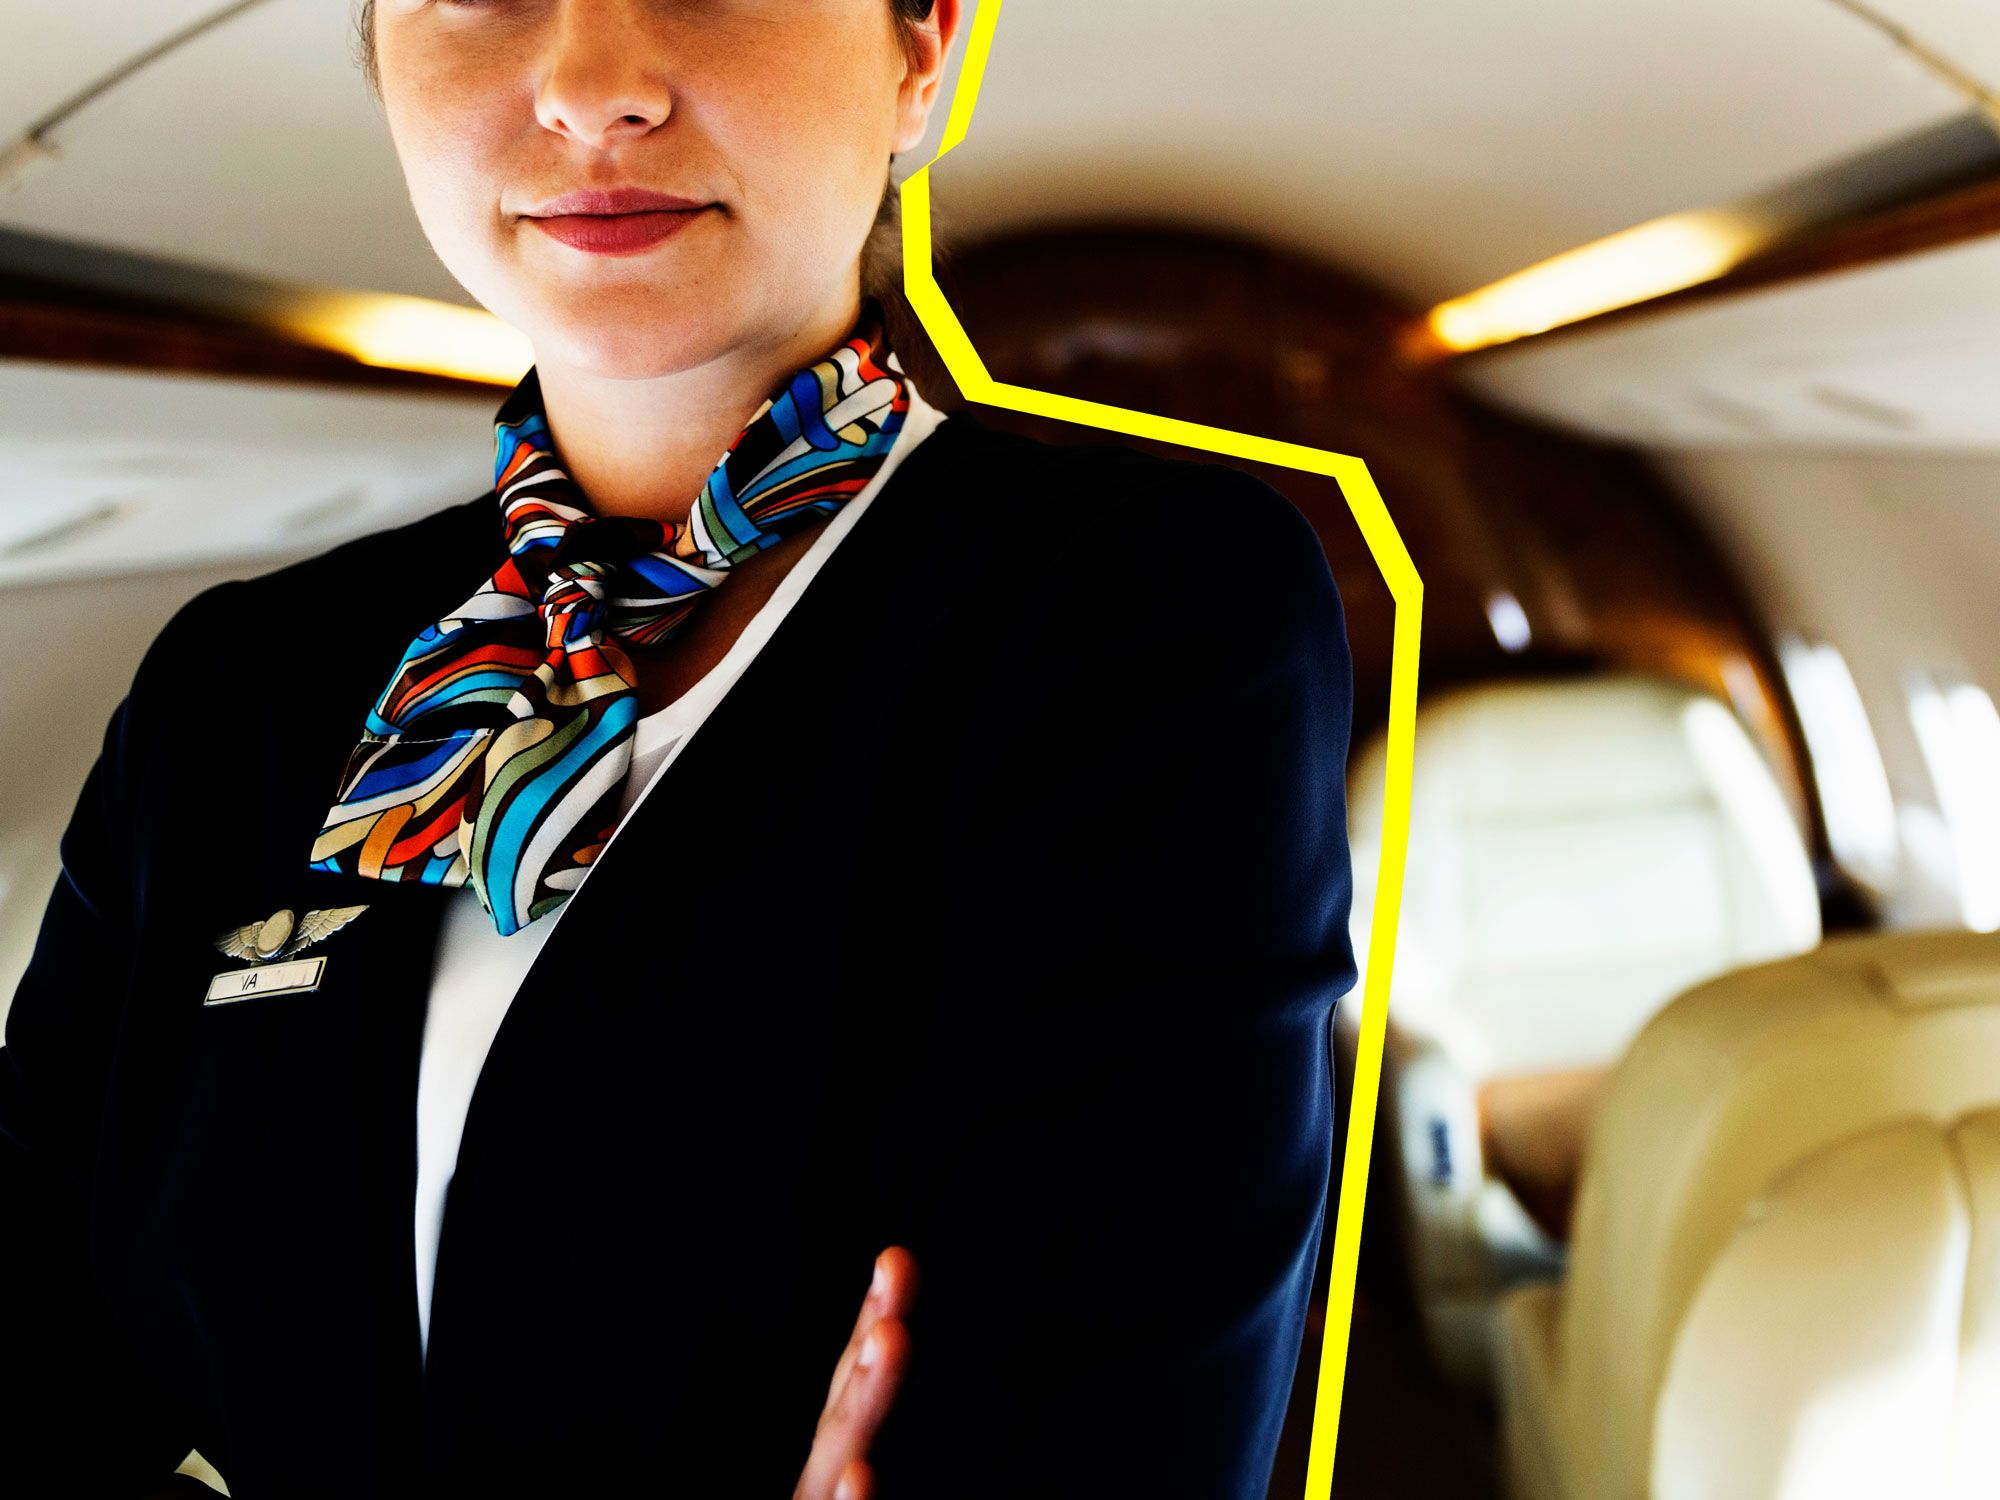 reasons to be a flight attendant